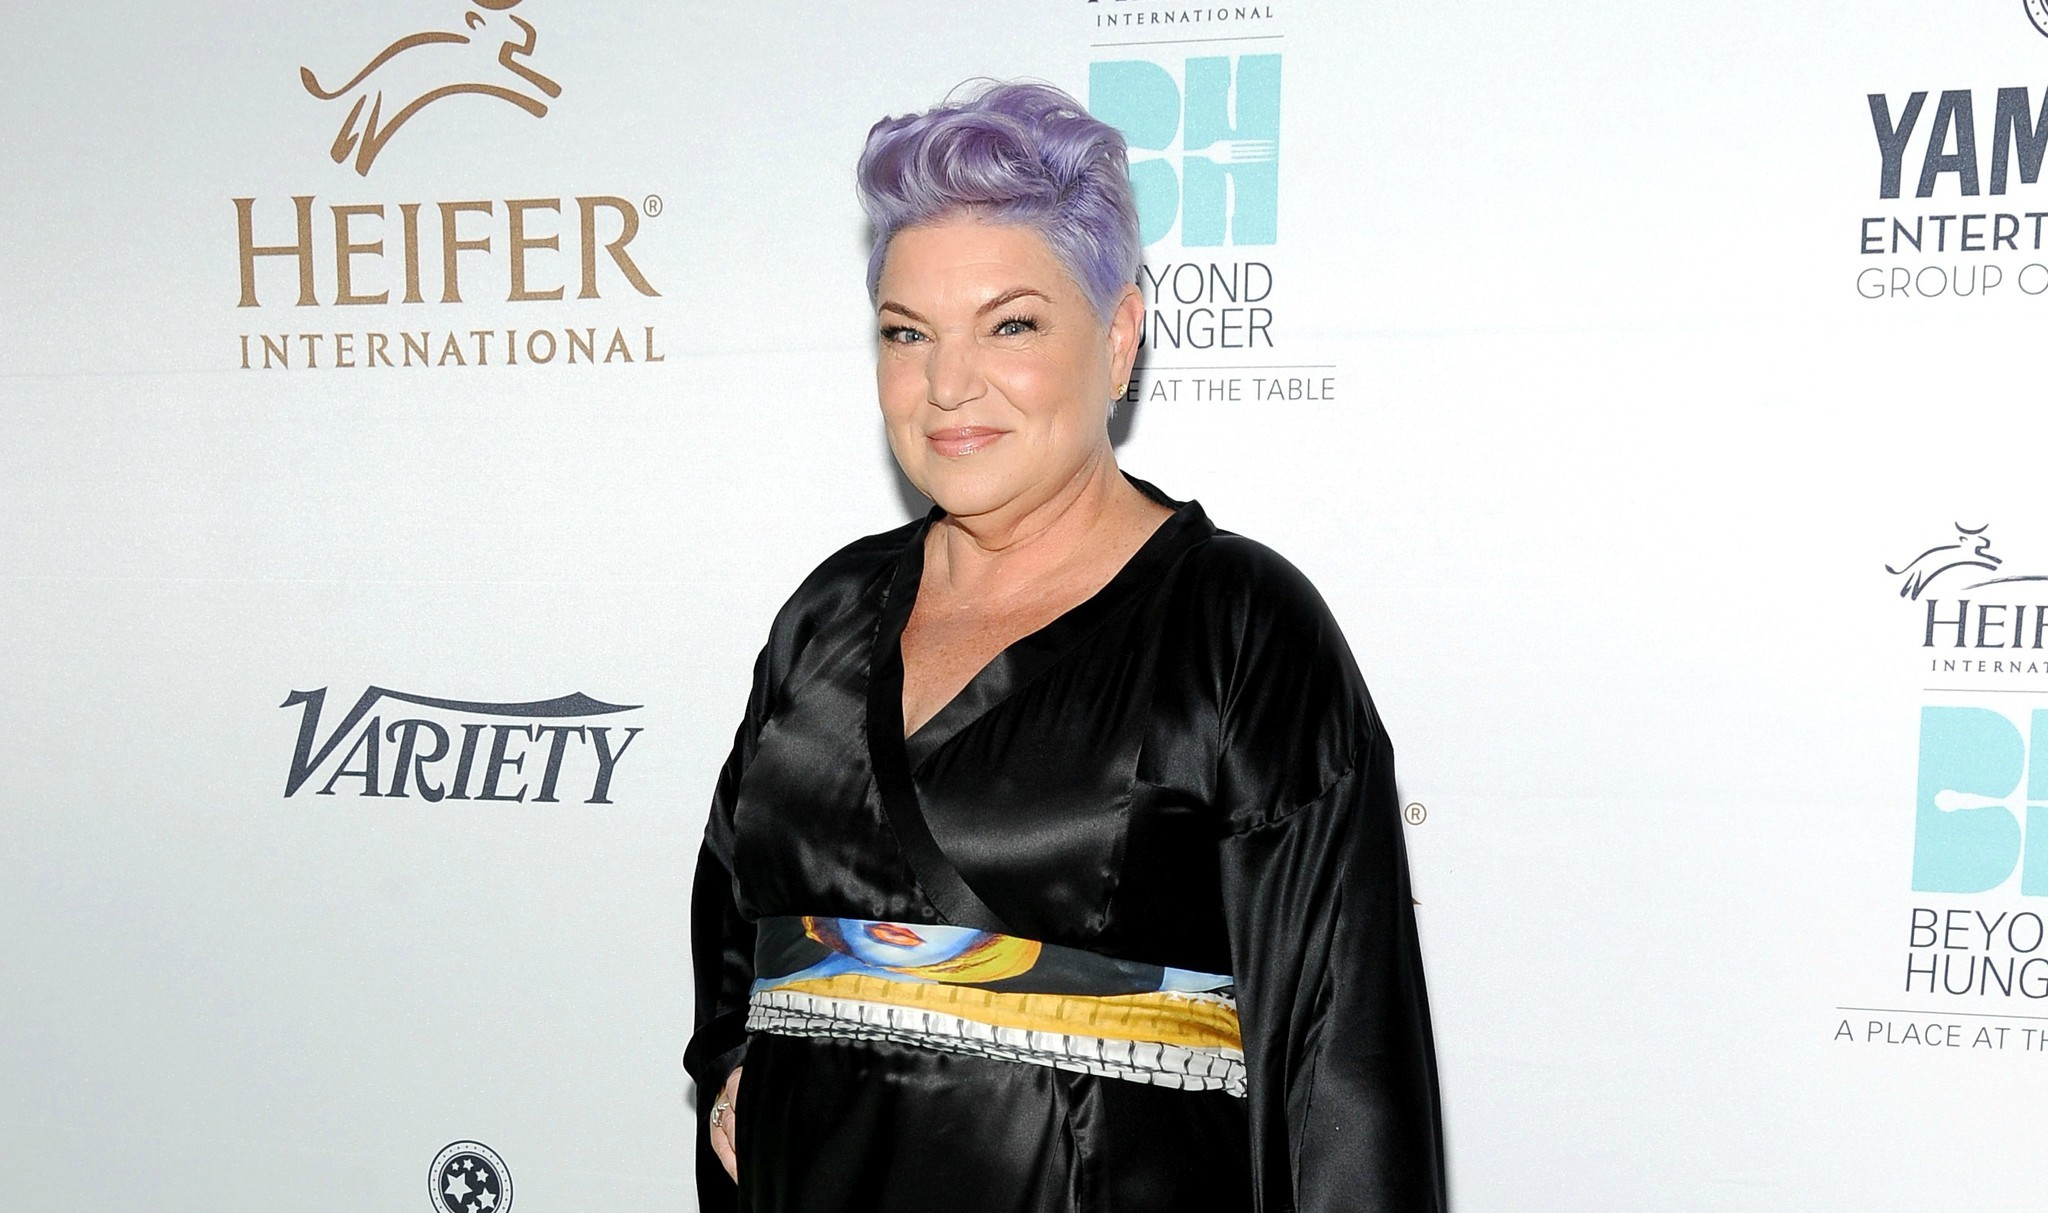 Mindy Cohn Of 'Facts Of Life' Details Harrowing Breast Cancer Fight